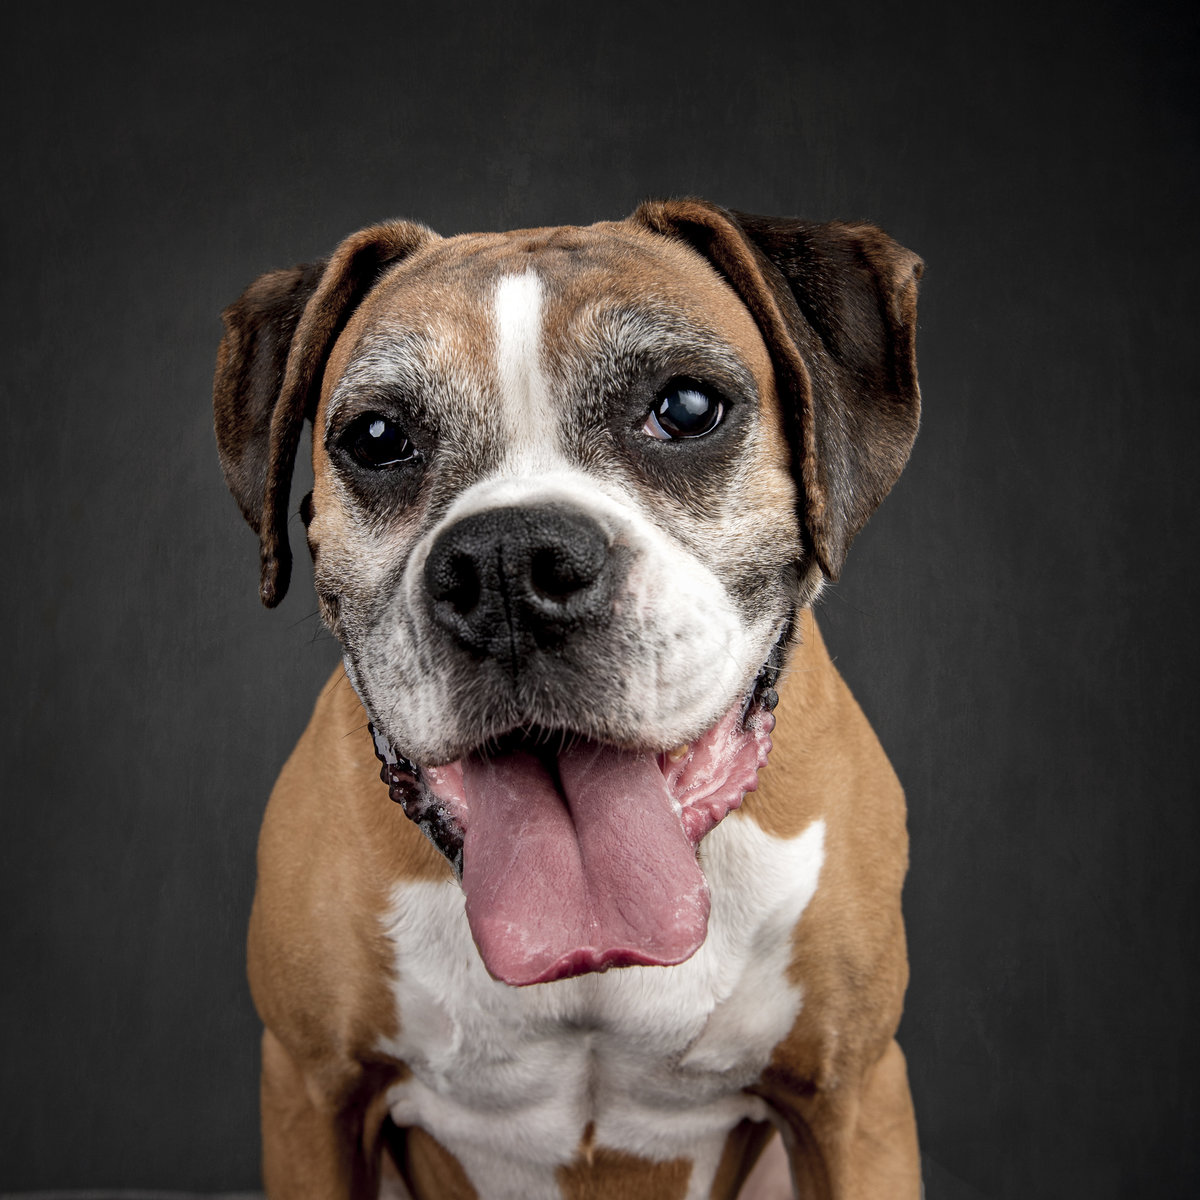 Goofy Boxer dog head and shoulders with tongue out